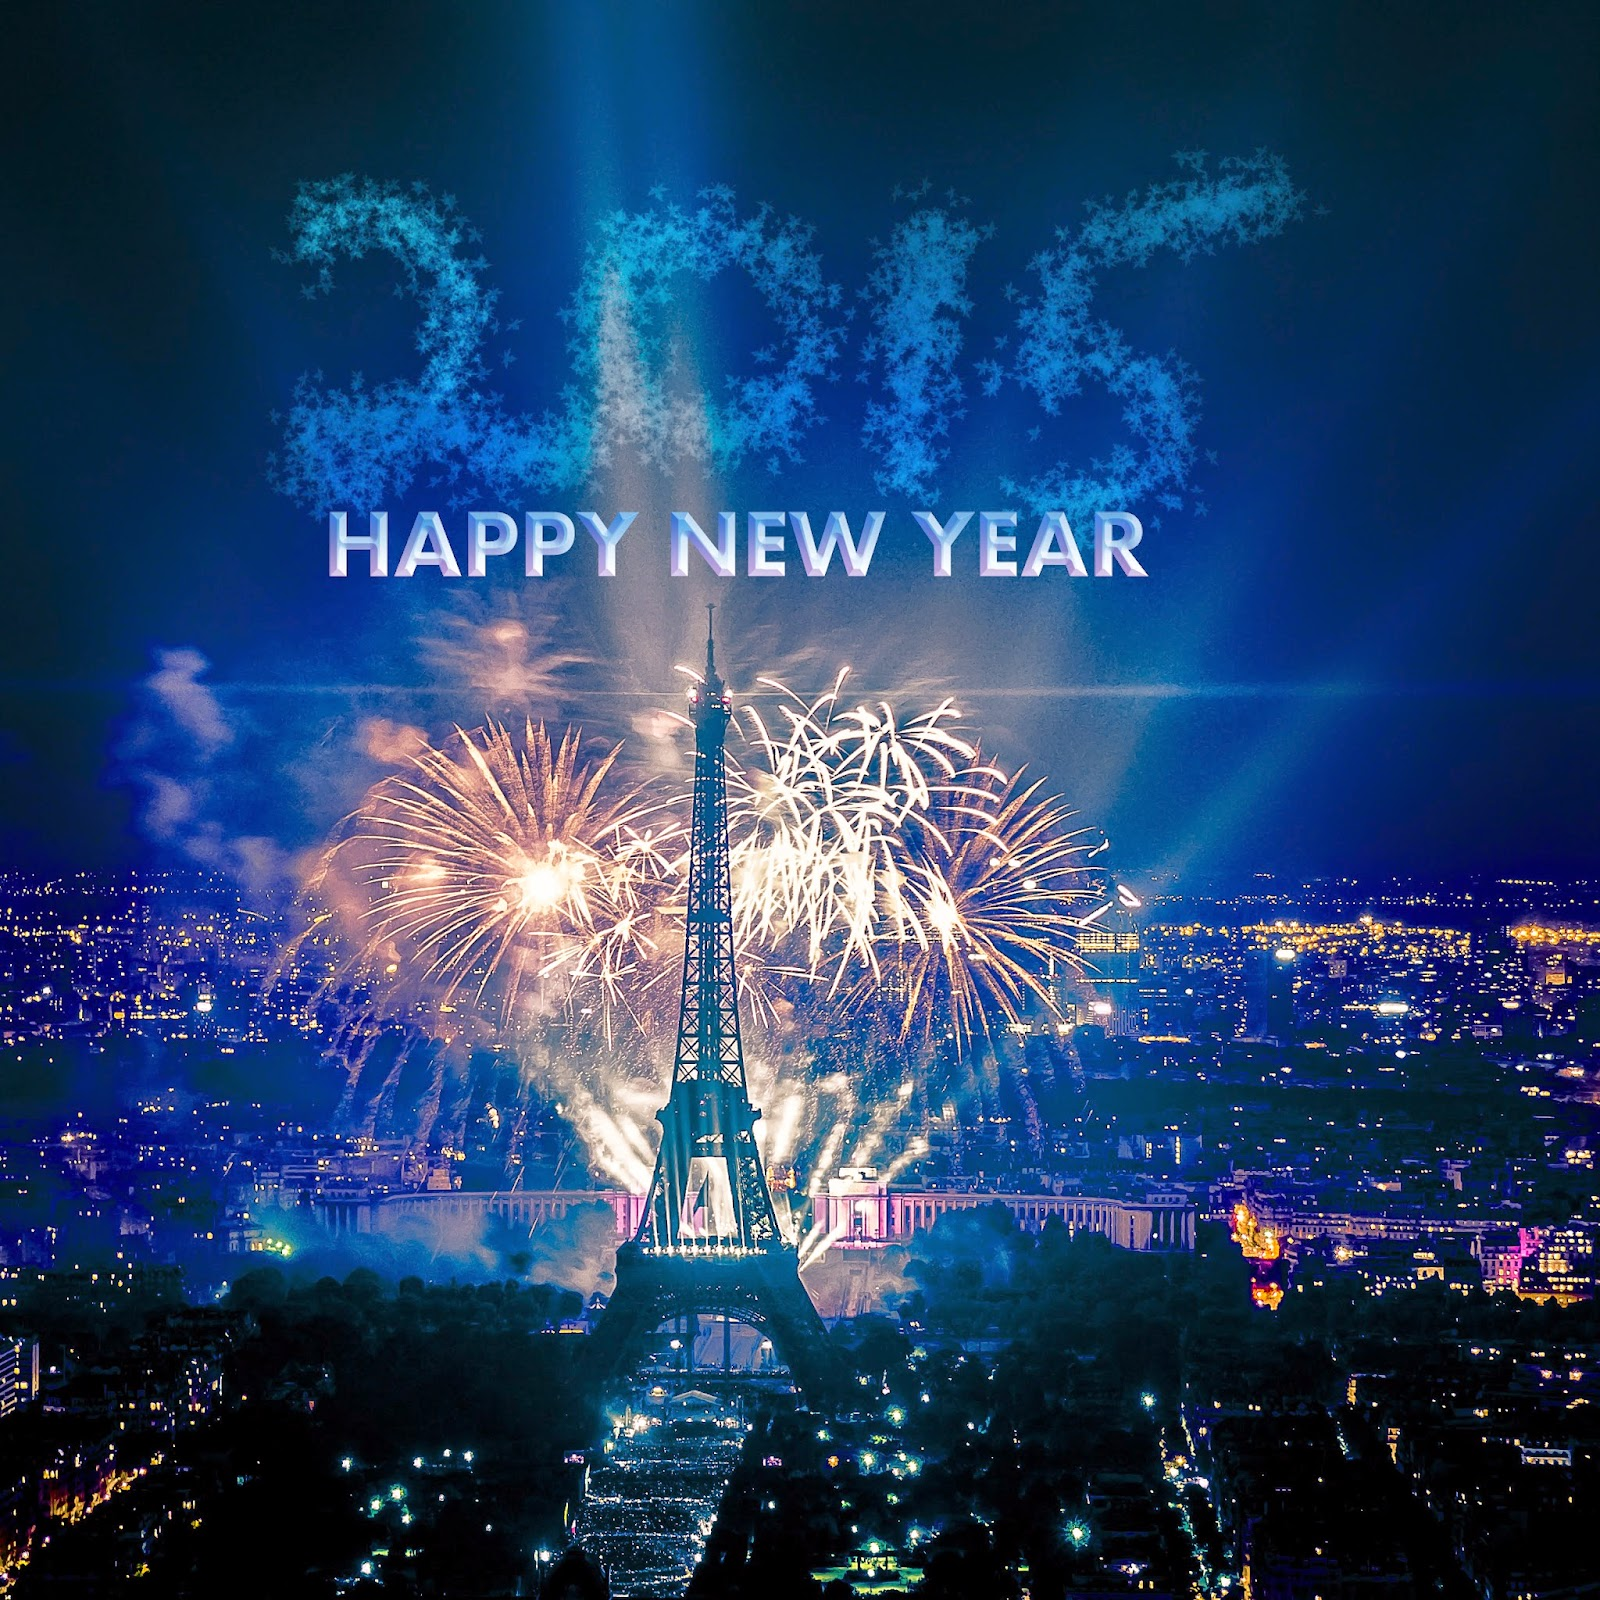 Top Class New Year Photos 2015 – Latest Images for all